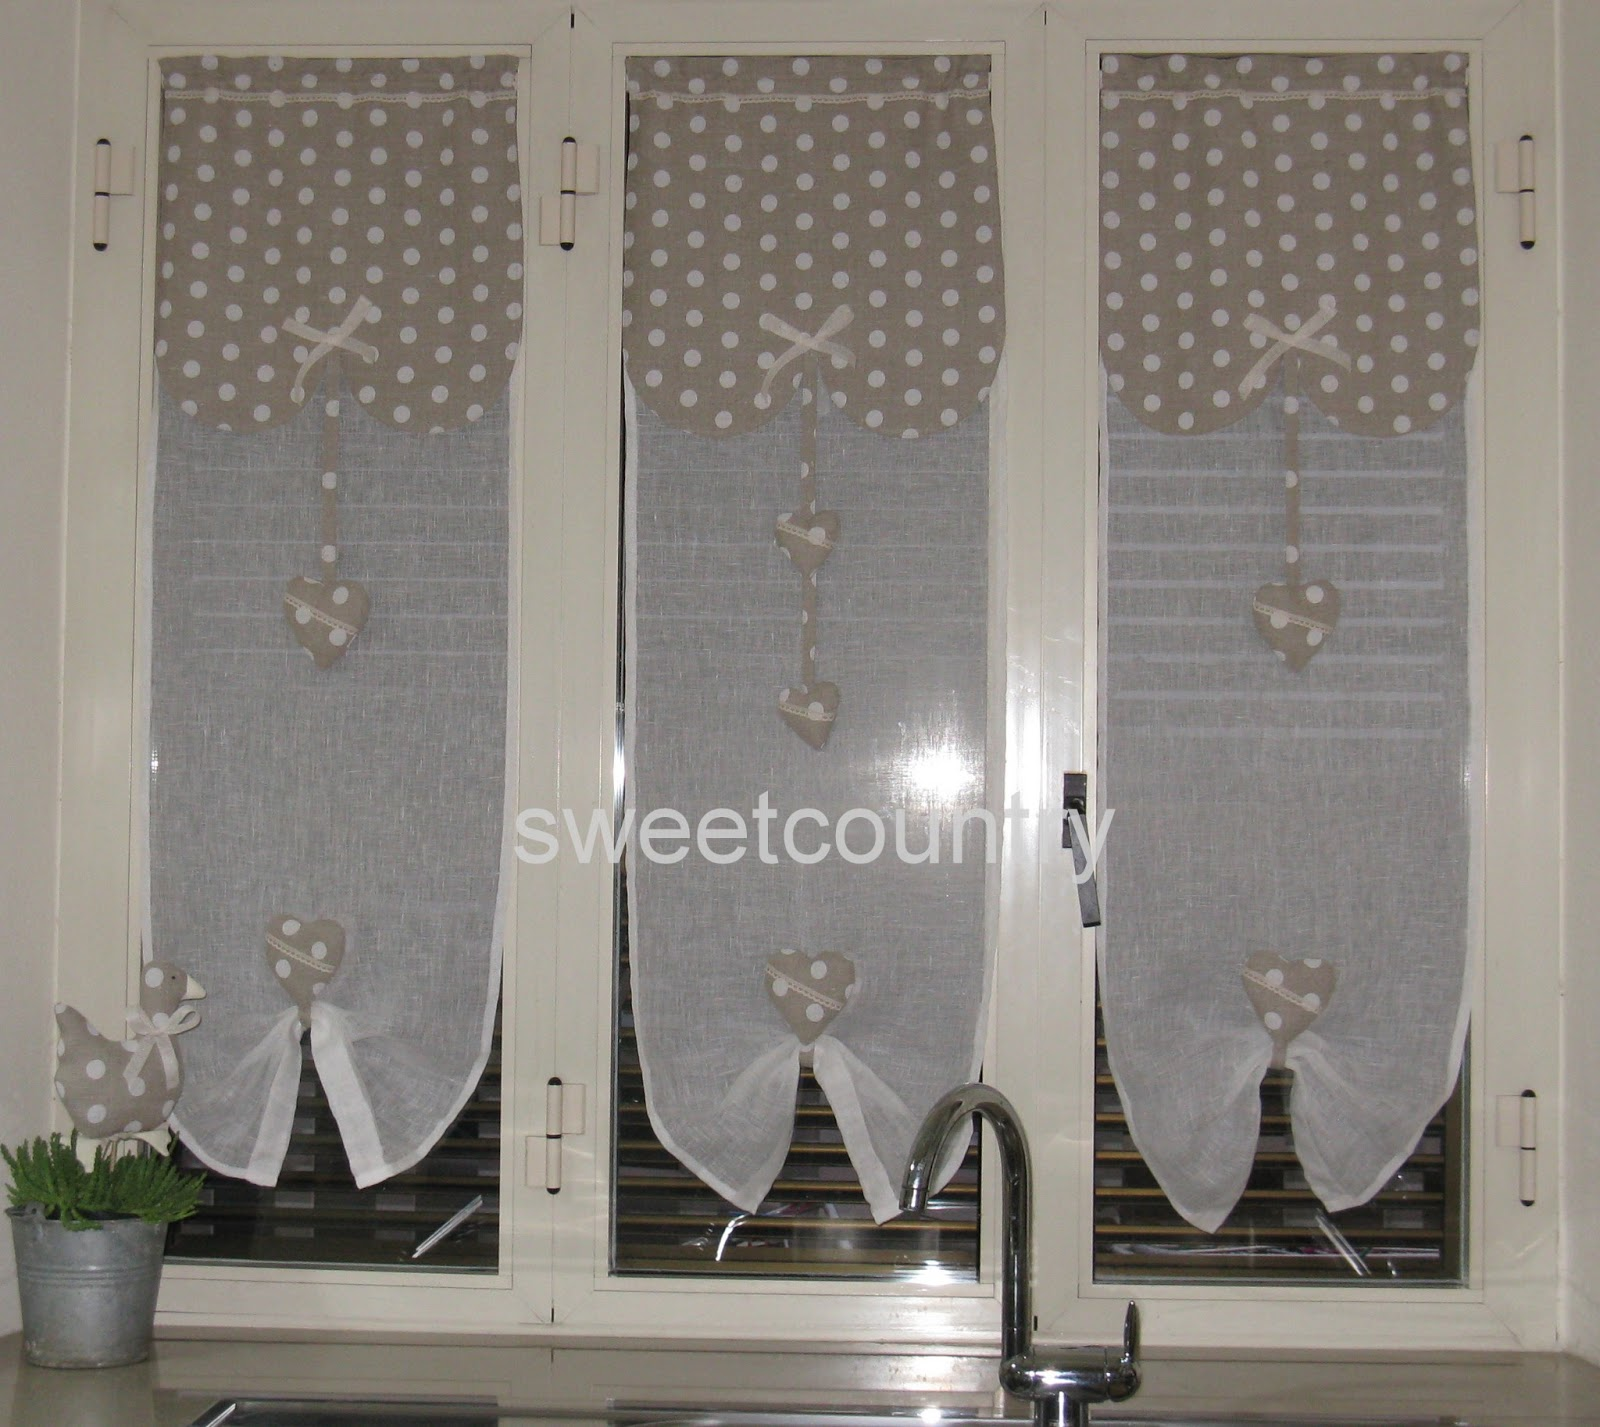 Sweetcountry tende country - Tende uncinetto cucina ...